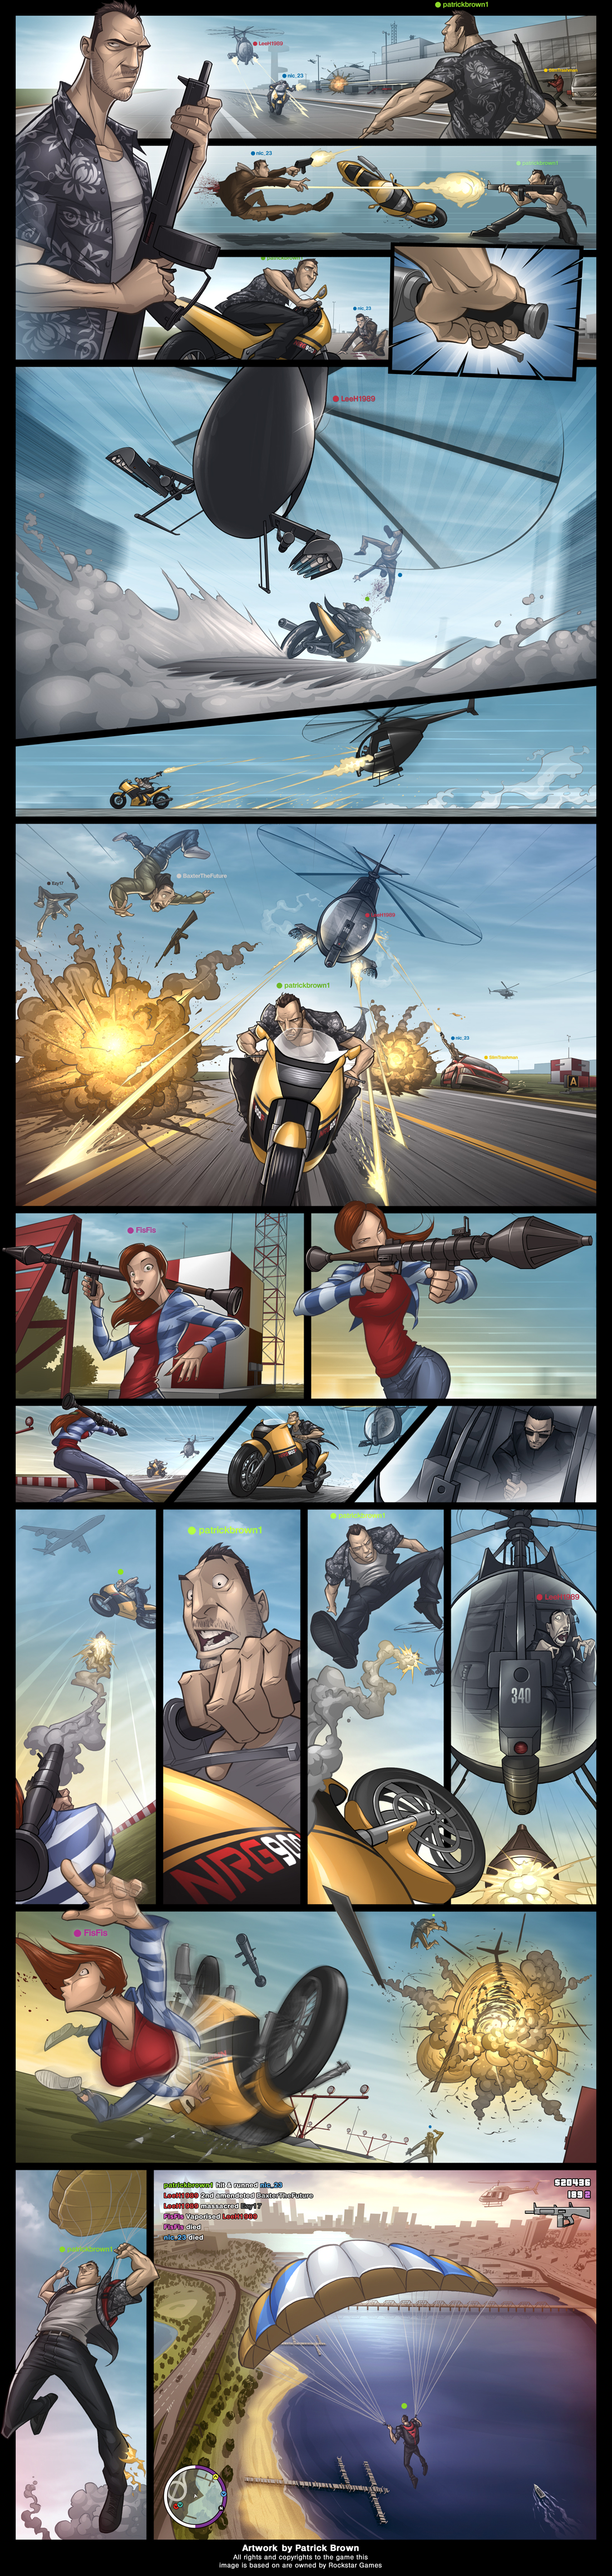 GTA IV COMIC by PatrickBrown